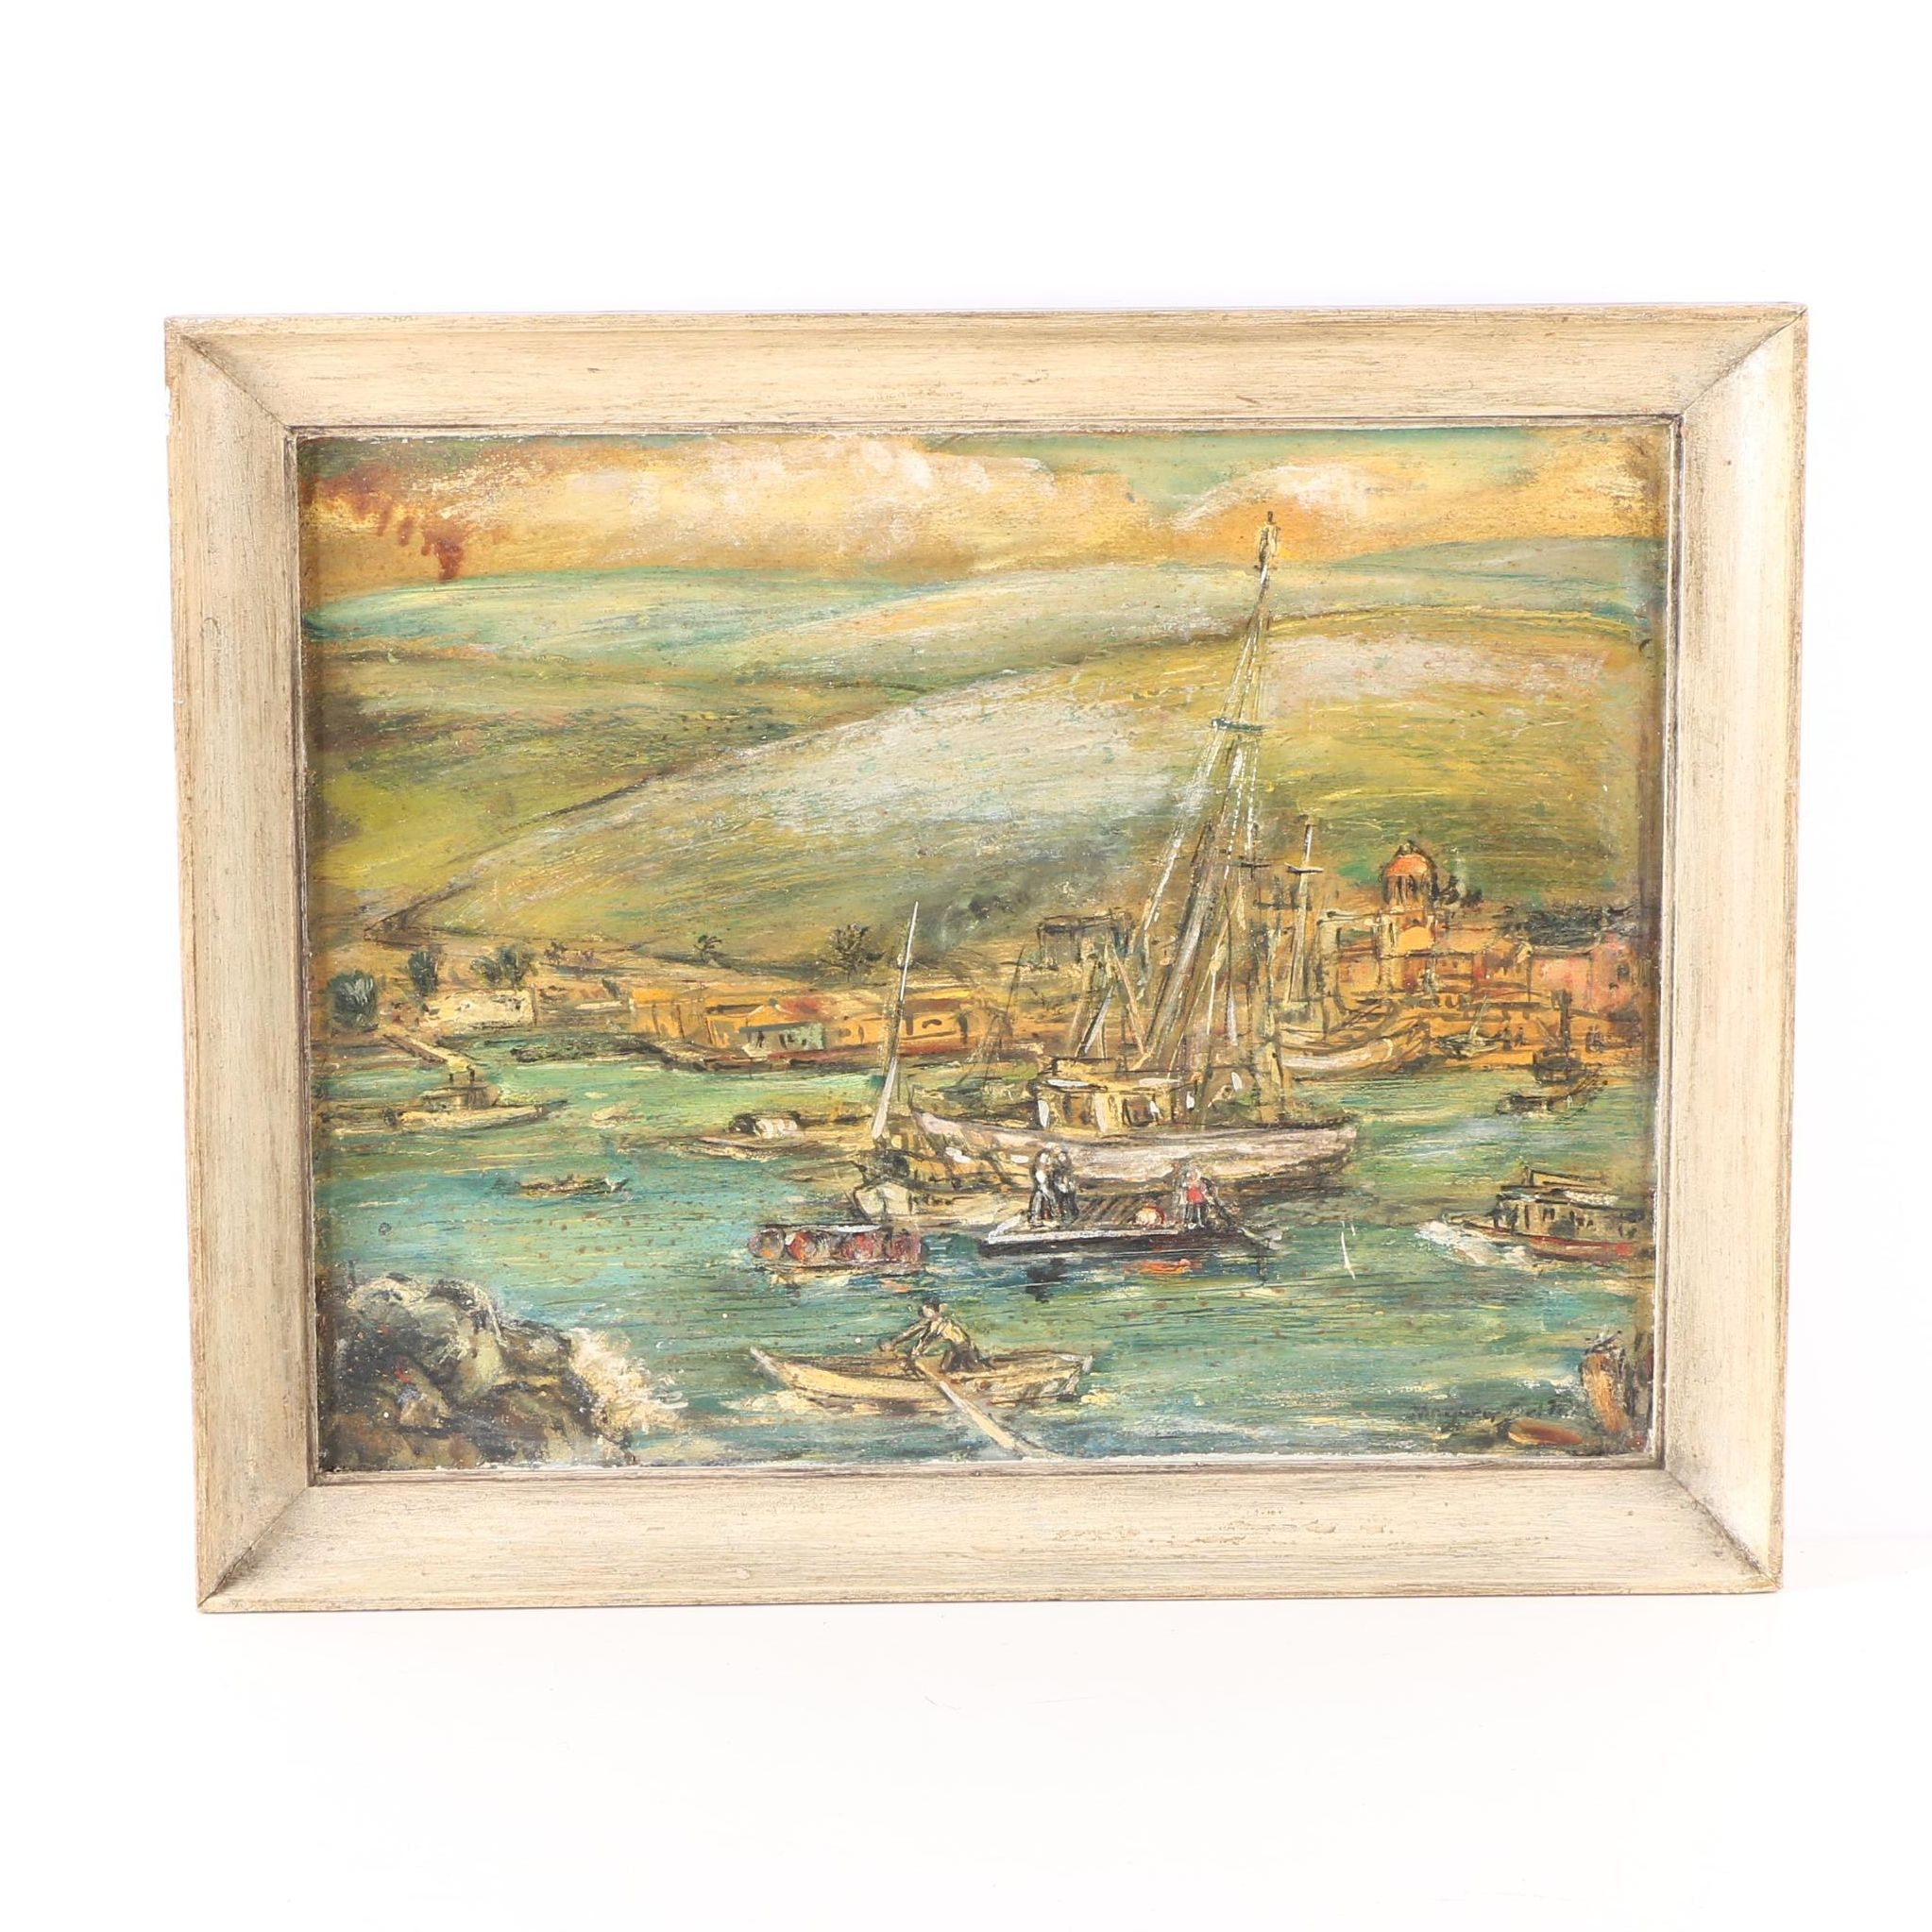 Oil Painting on Board of a Harbor Scene